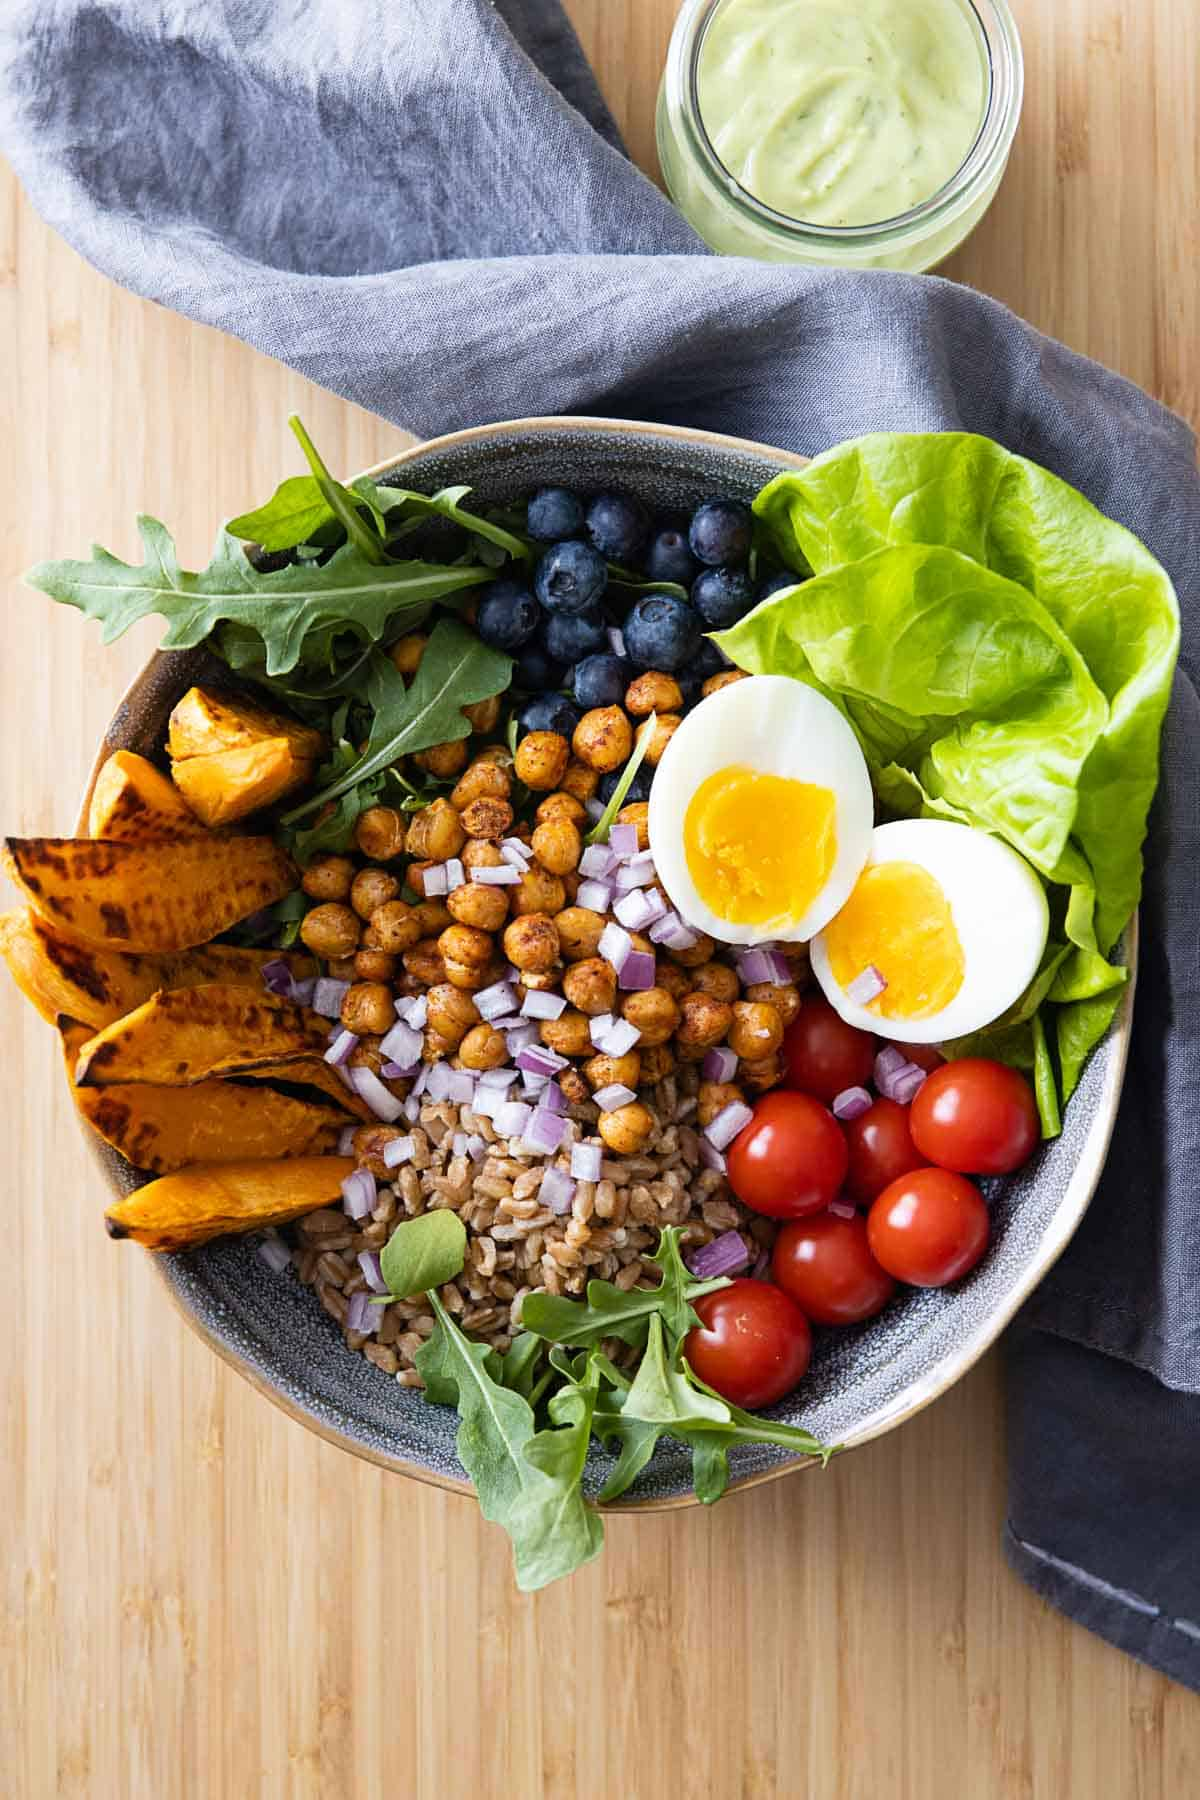 Bowl filled with lettuce, roasted sweet potato, roasted chickpeas, tomatoes, farro, red onion, blueberries, and a hard-boiled egg.